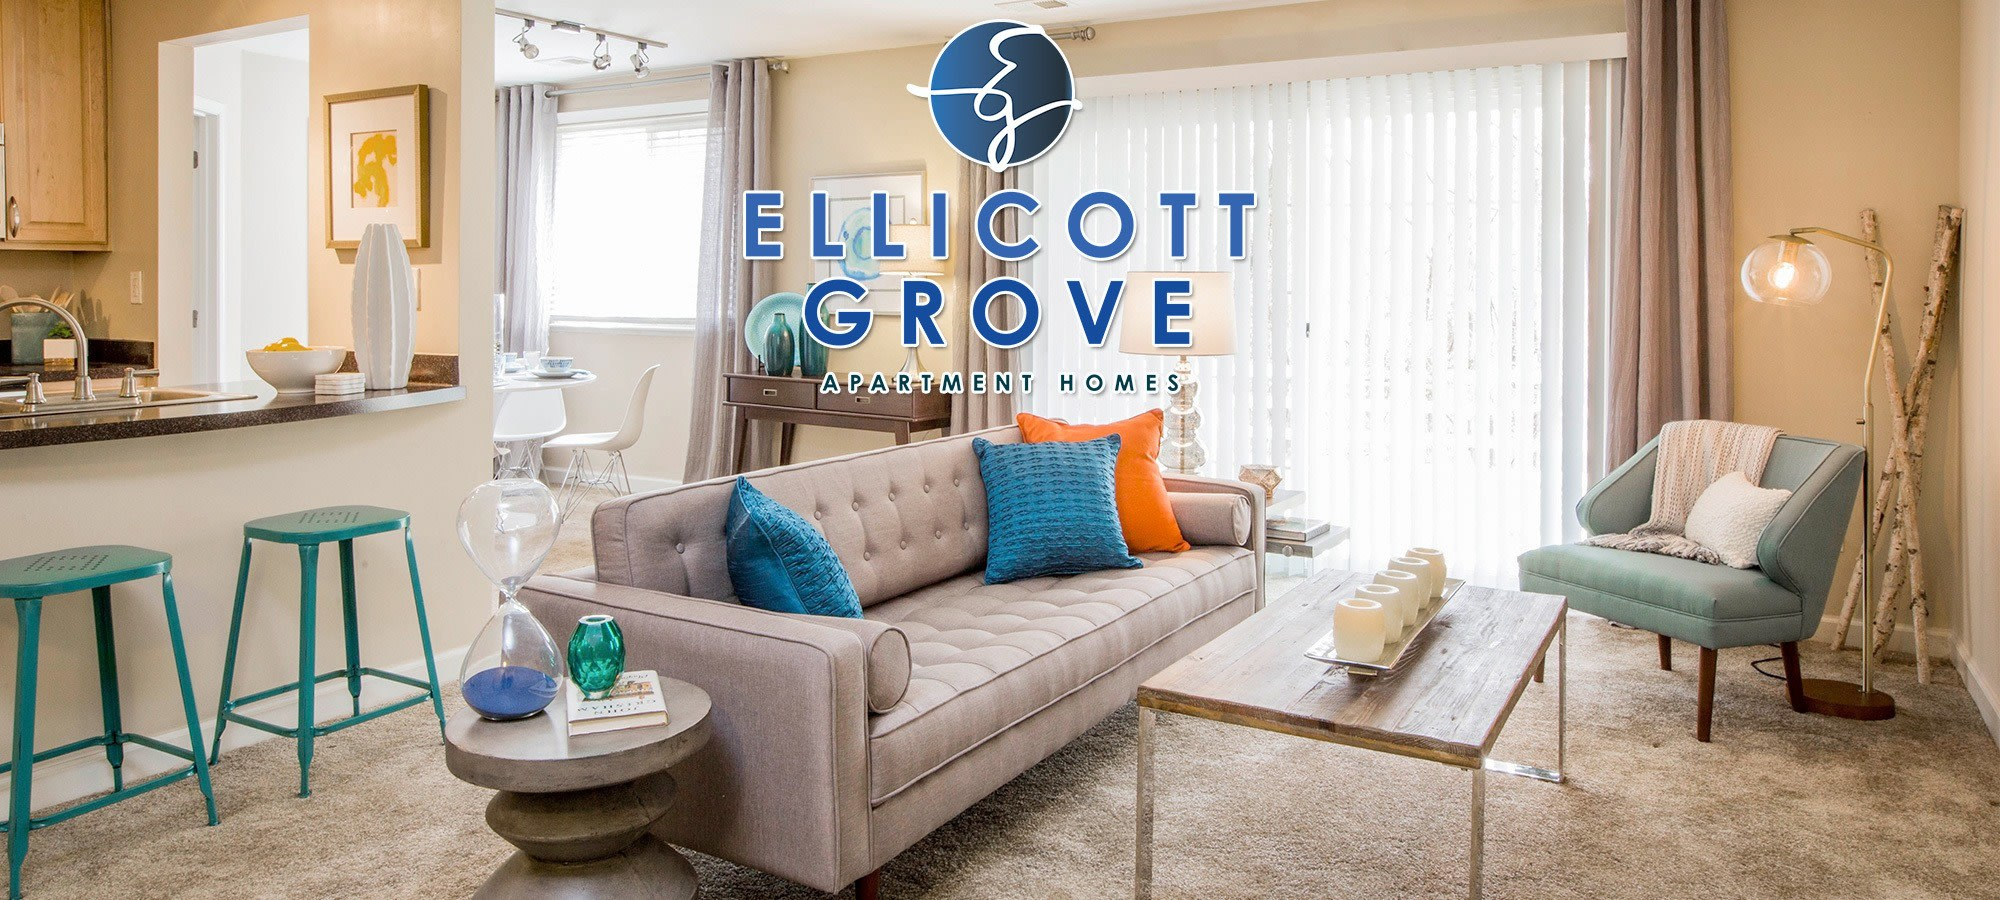 Apartments in Ellicott Grove.